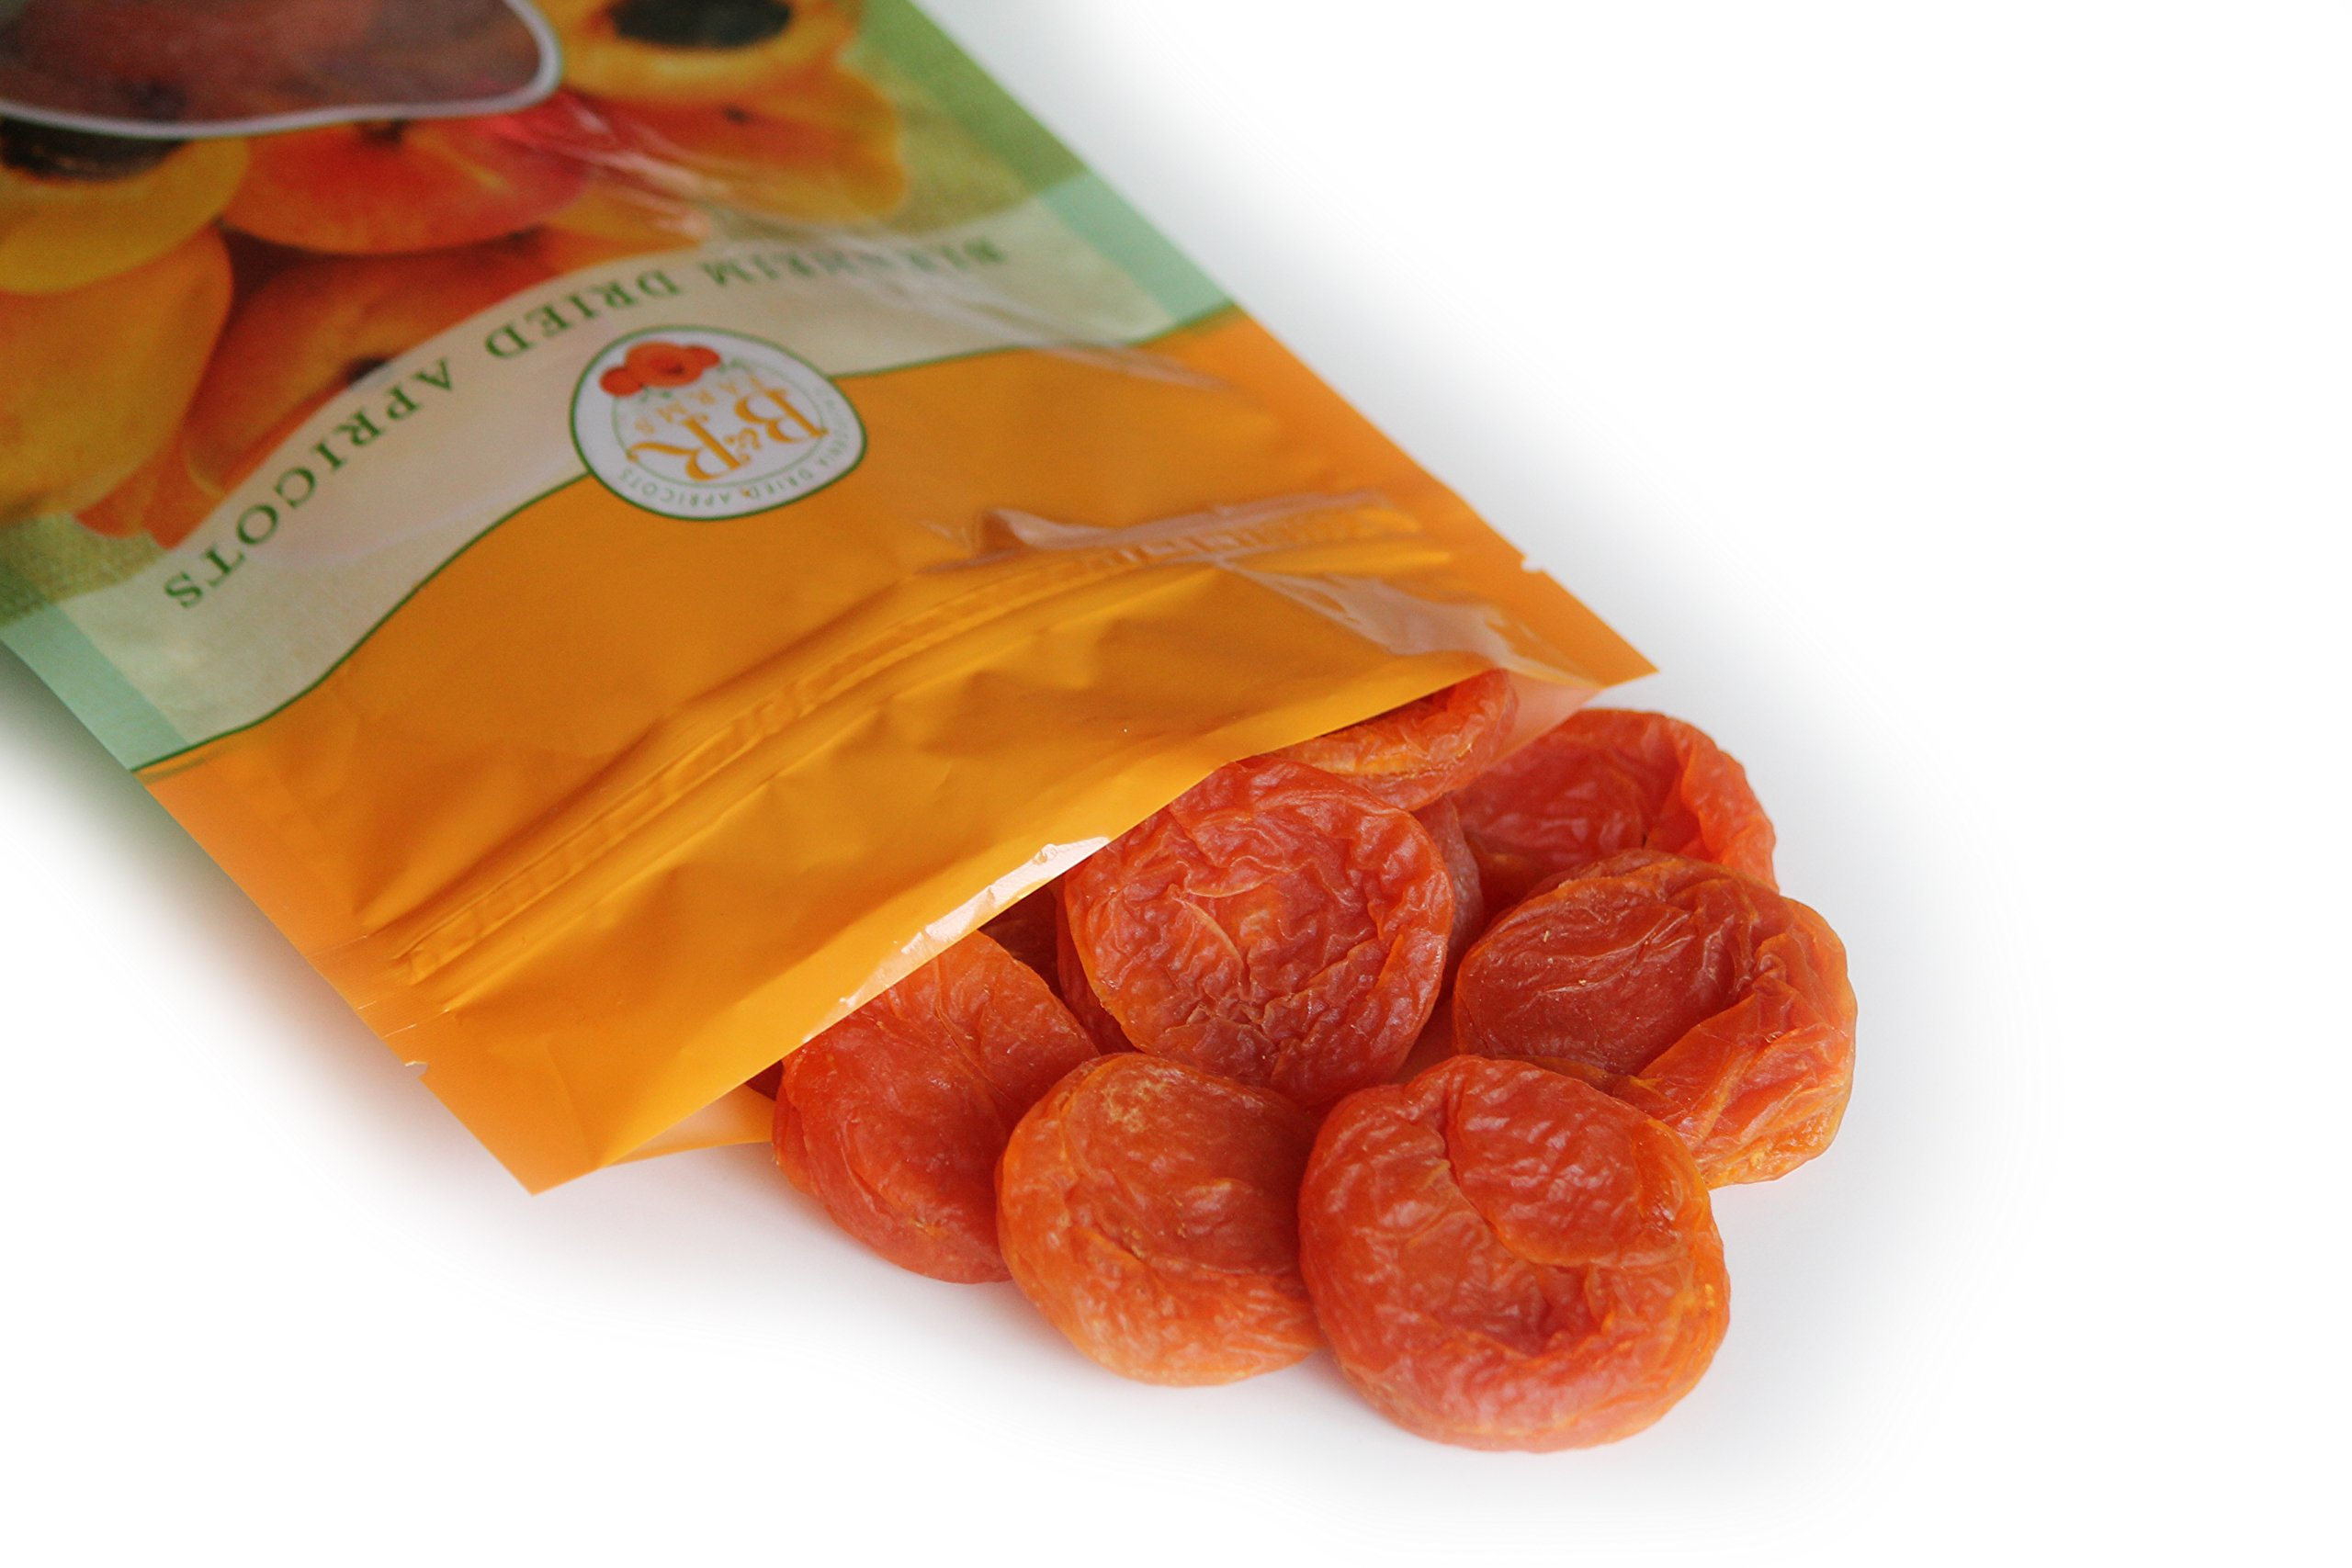 B& R Farms Royal Medallions 1 lb (resealable bag)